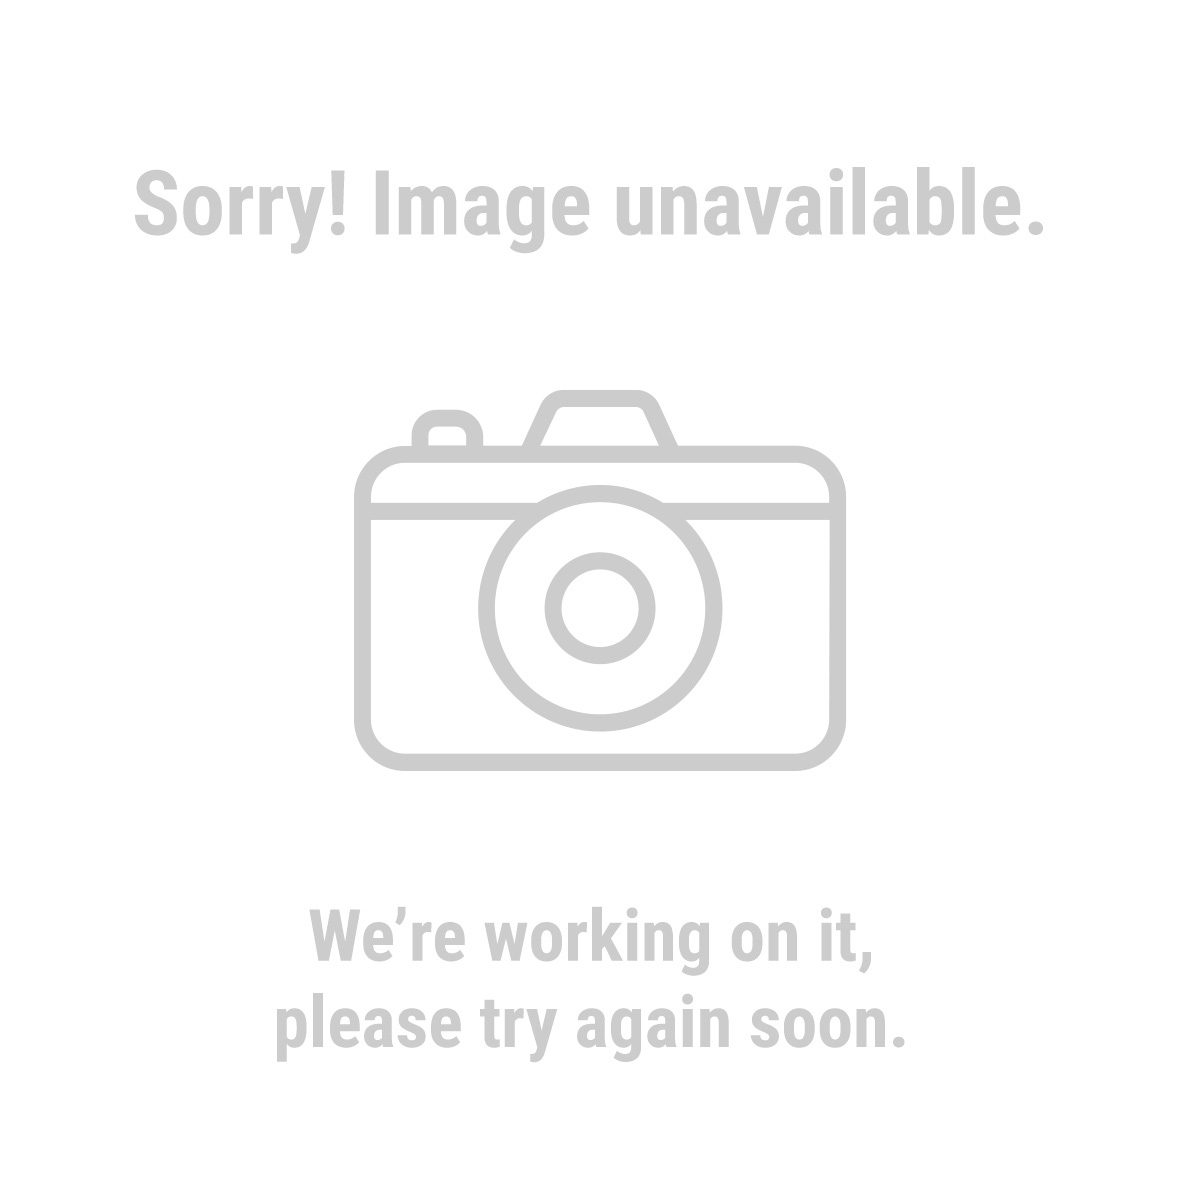 Warrior 61503 2 in. Coarse Grade Fiber Surface Conditioning Discs 5 Pc